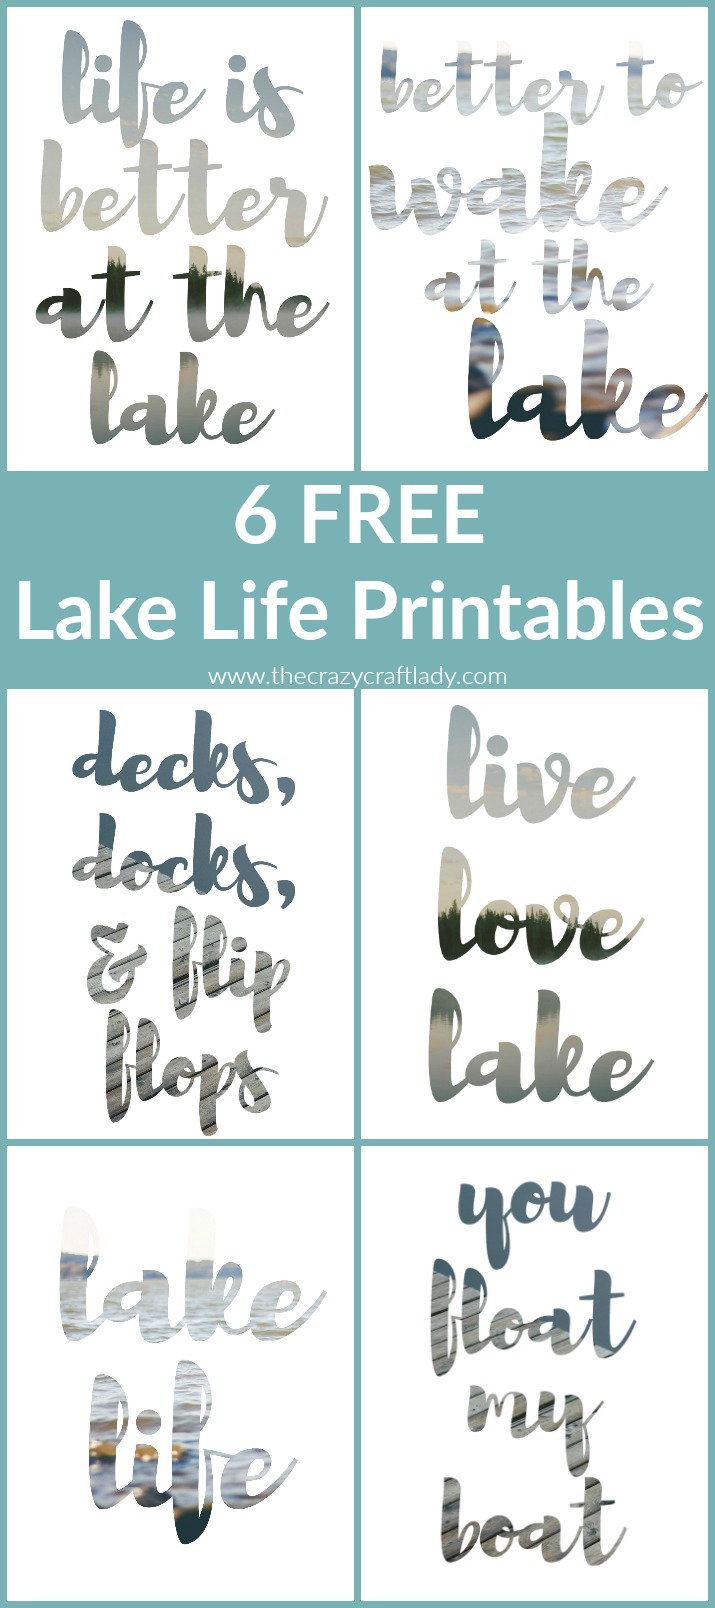 Summer Captions – and 12 FREE Printables